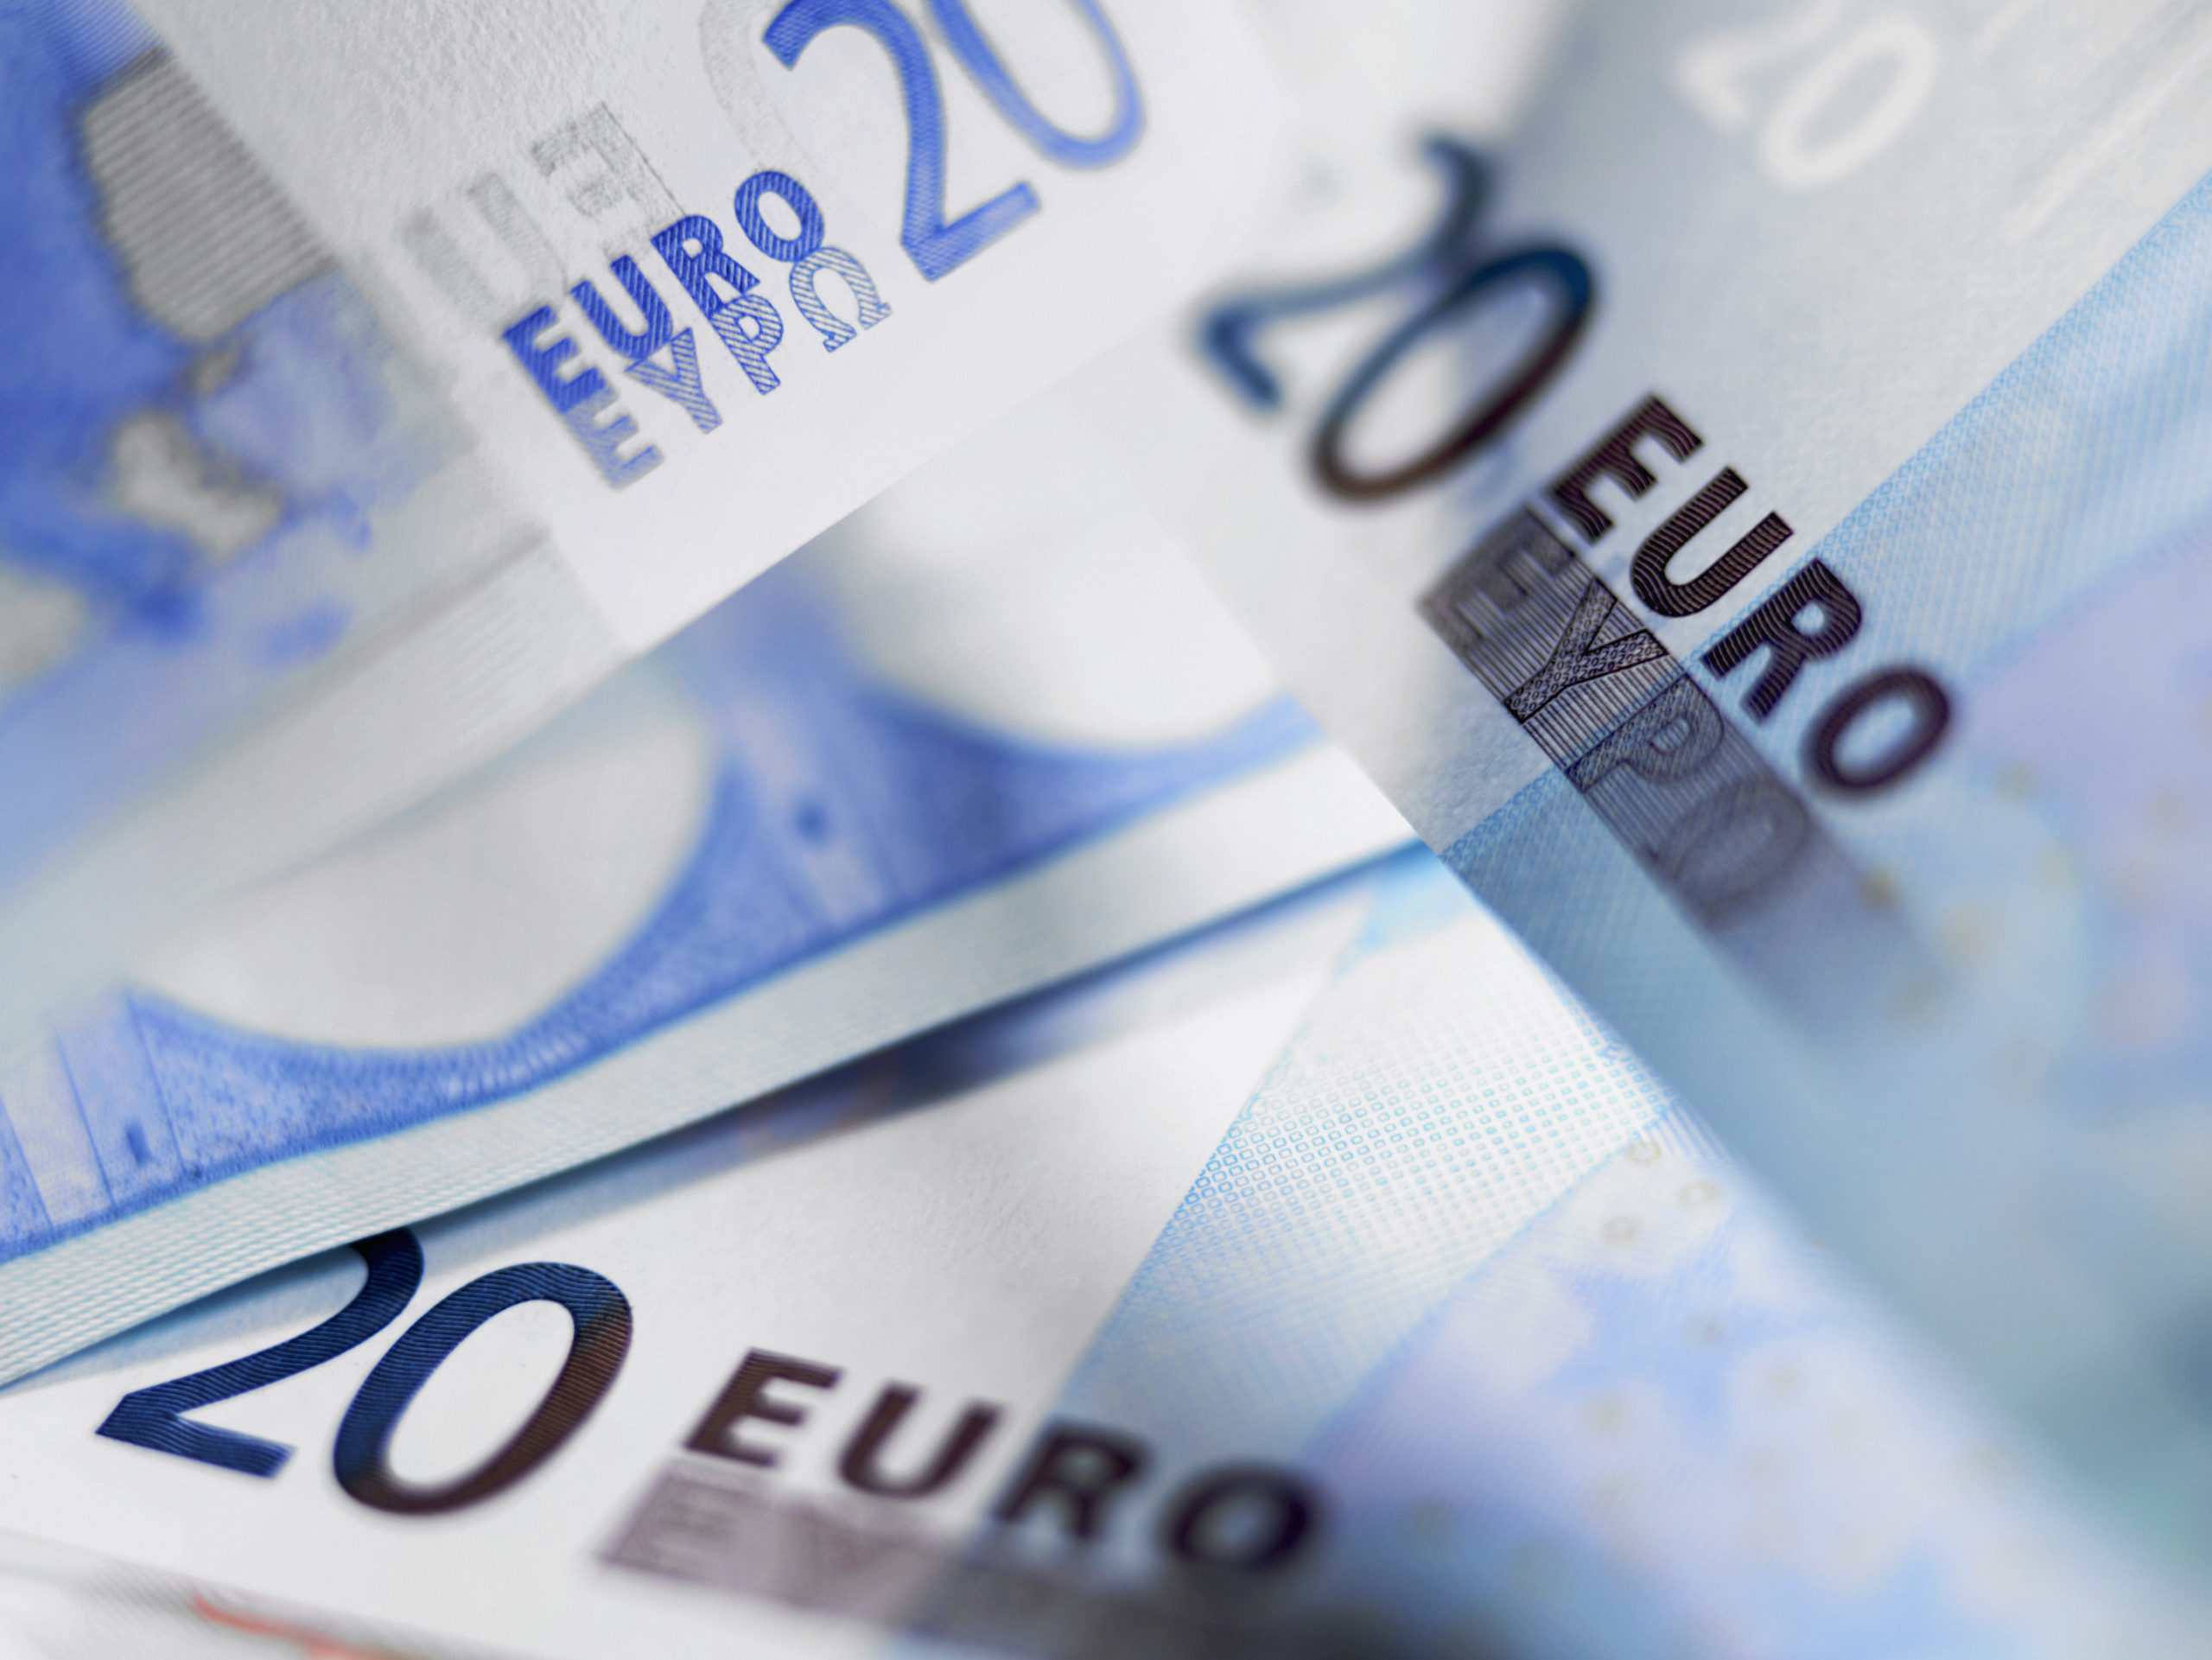 17/02 – Dollar fights back as GBPEUR hits 1.15